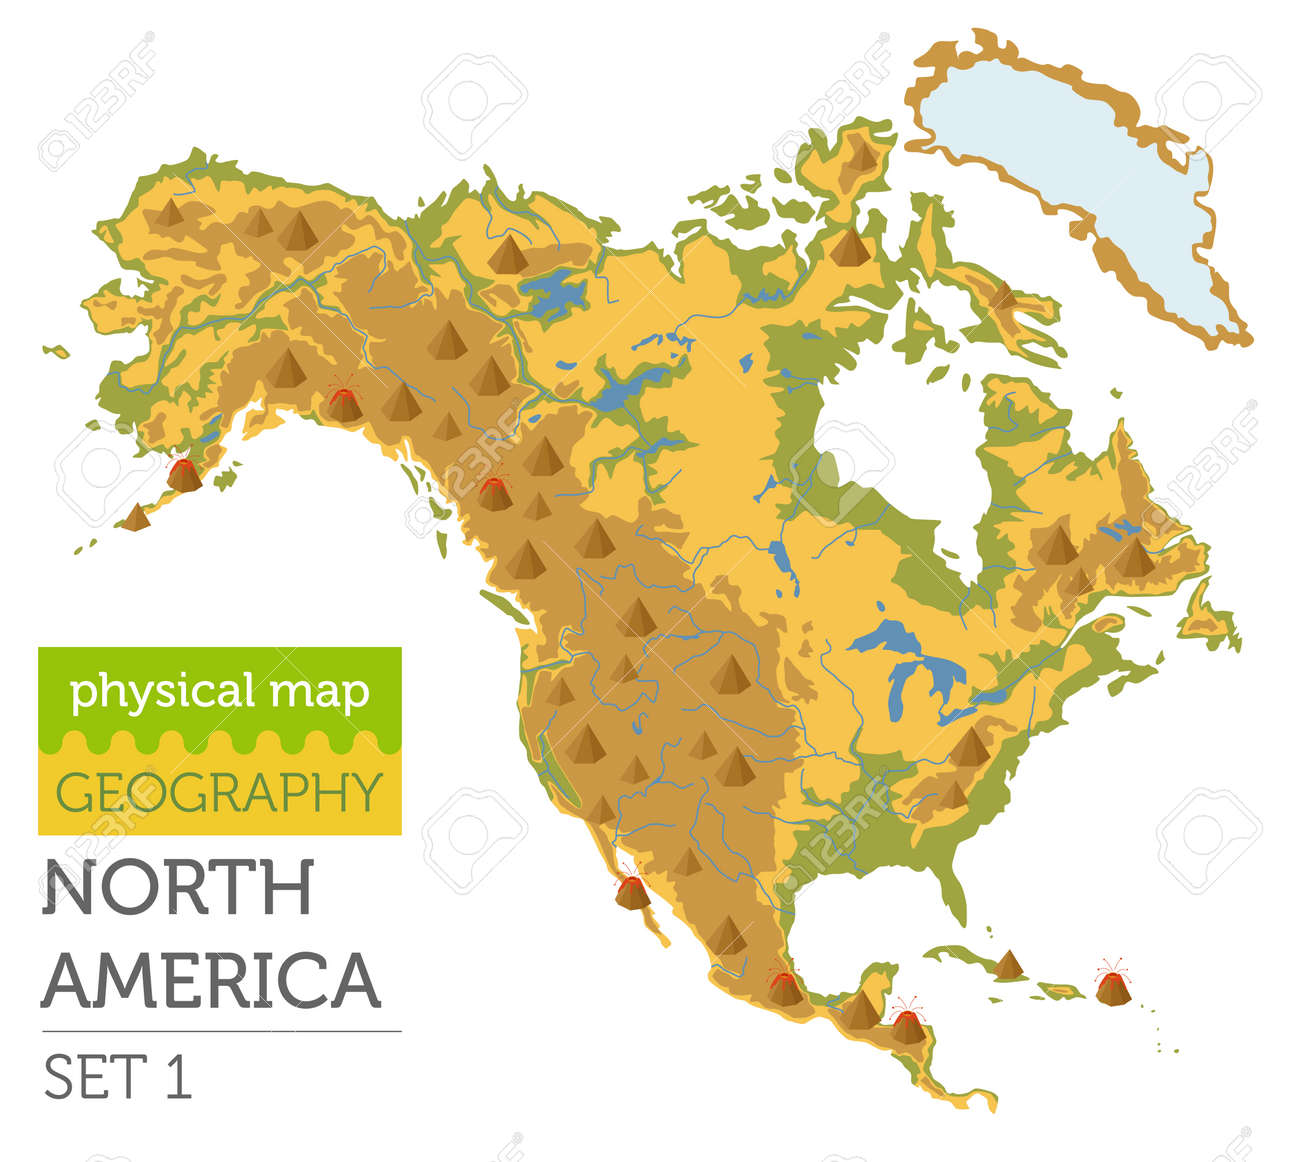 North America physical map elements. Build your own geography..